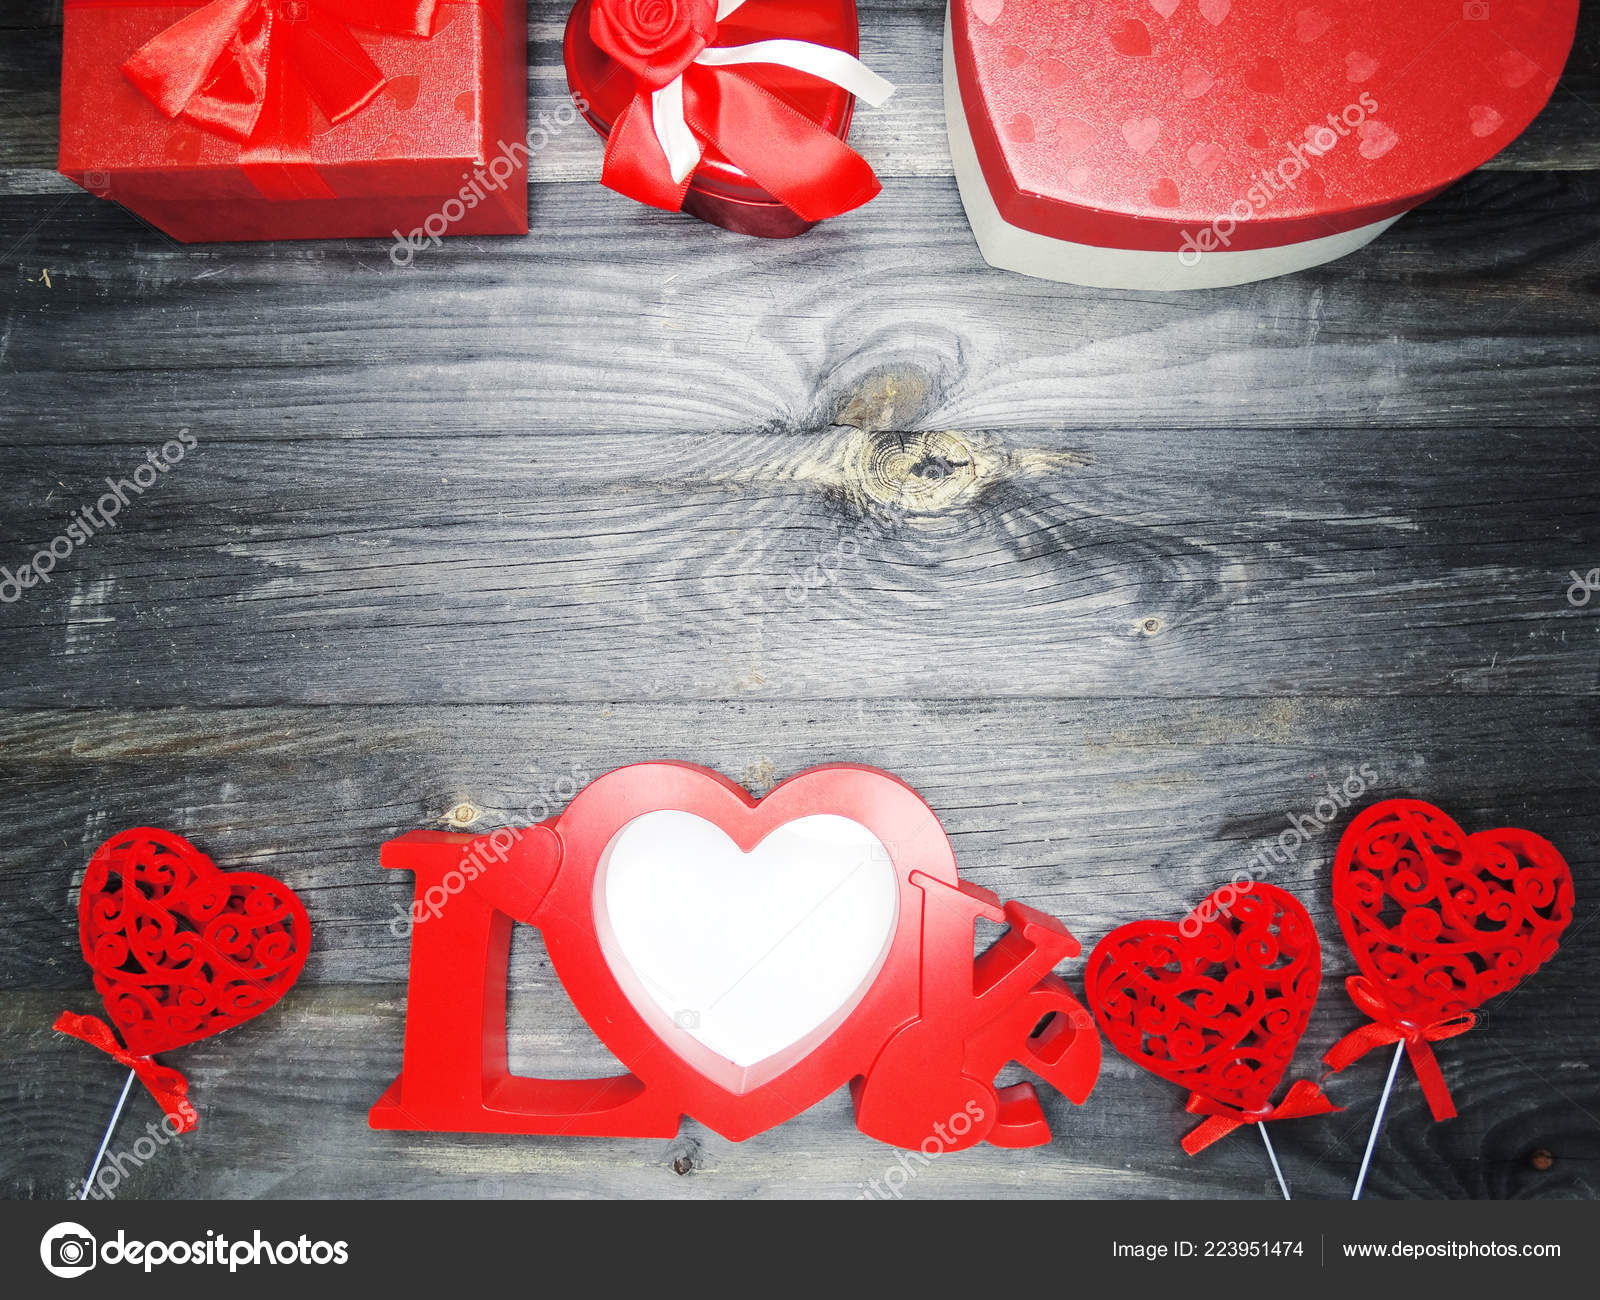 Love Valentine Day Red Heart Gift Copy Space Wooden Background